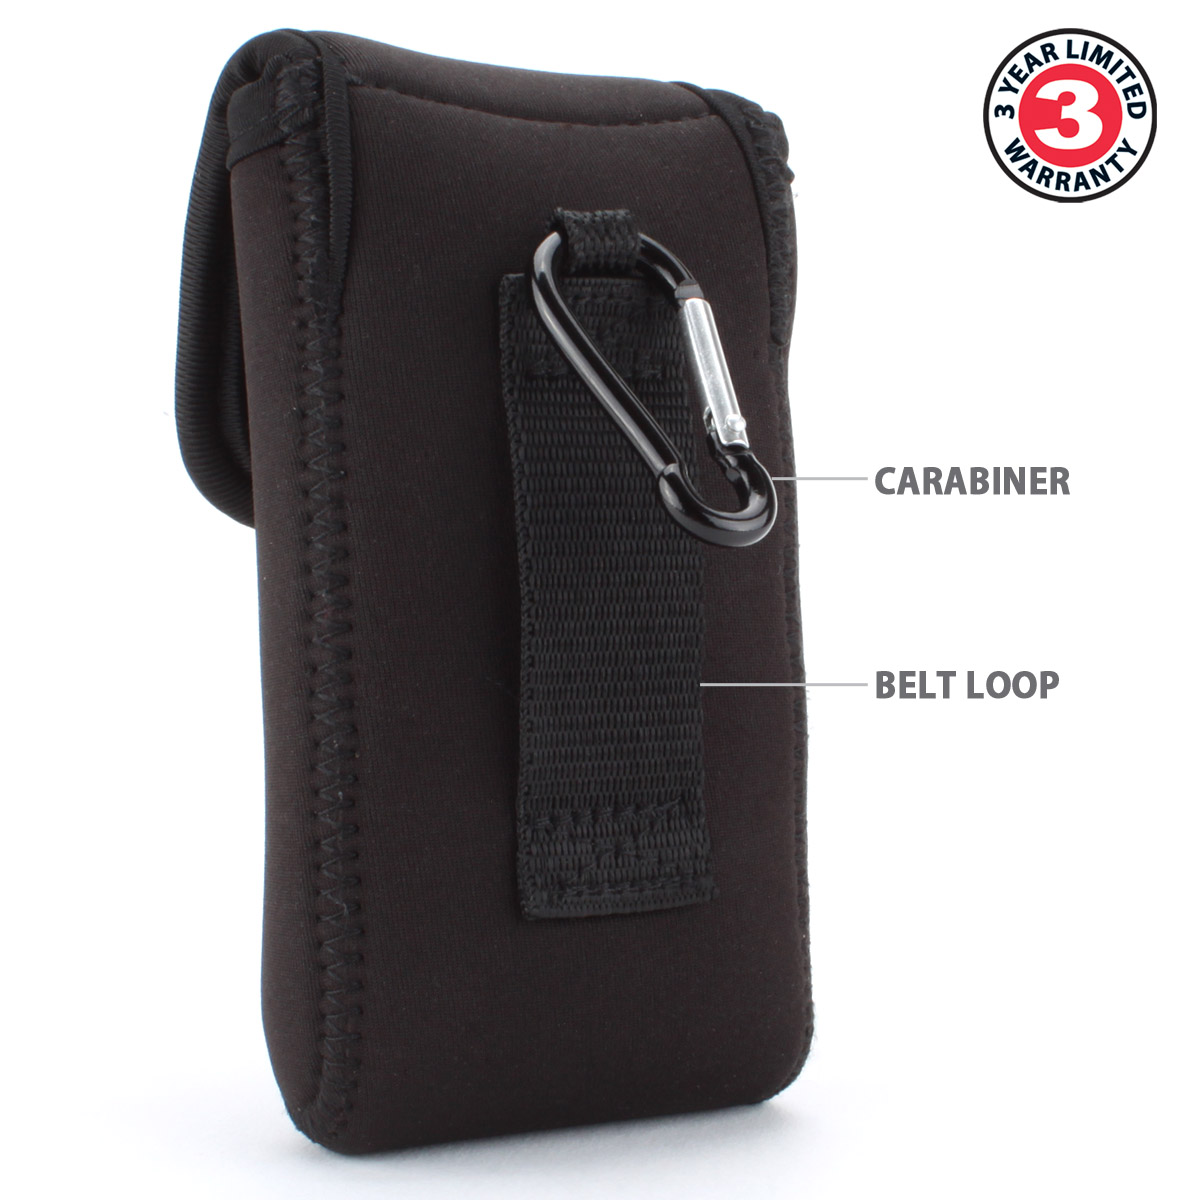 Usa Gear Neoprene Safety Pouch Case For Sunglasses And